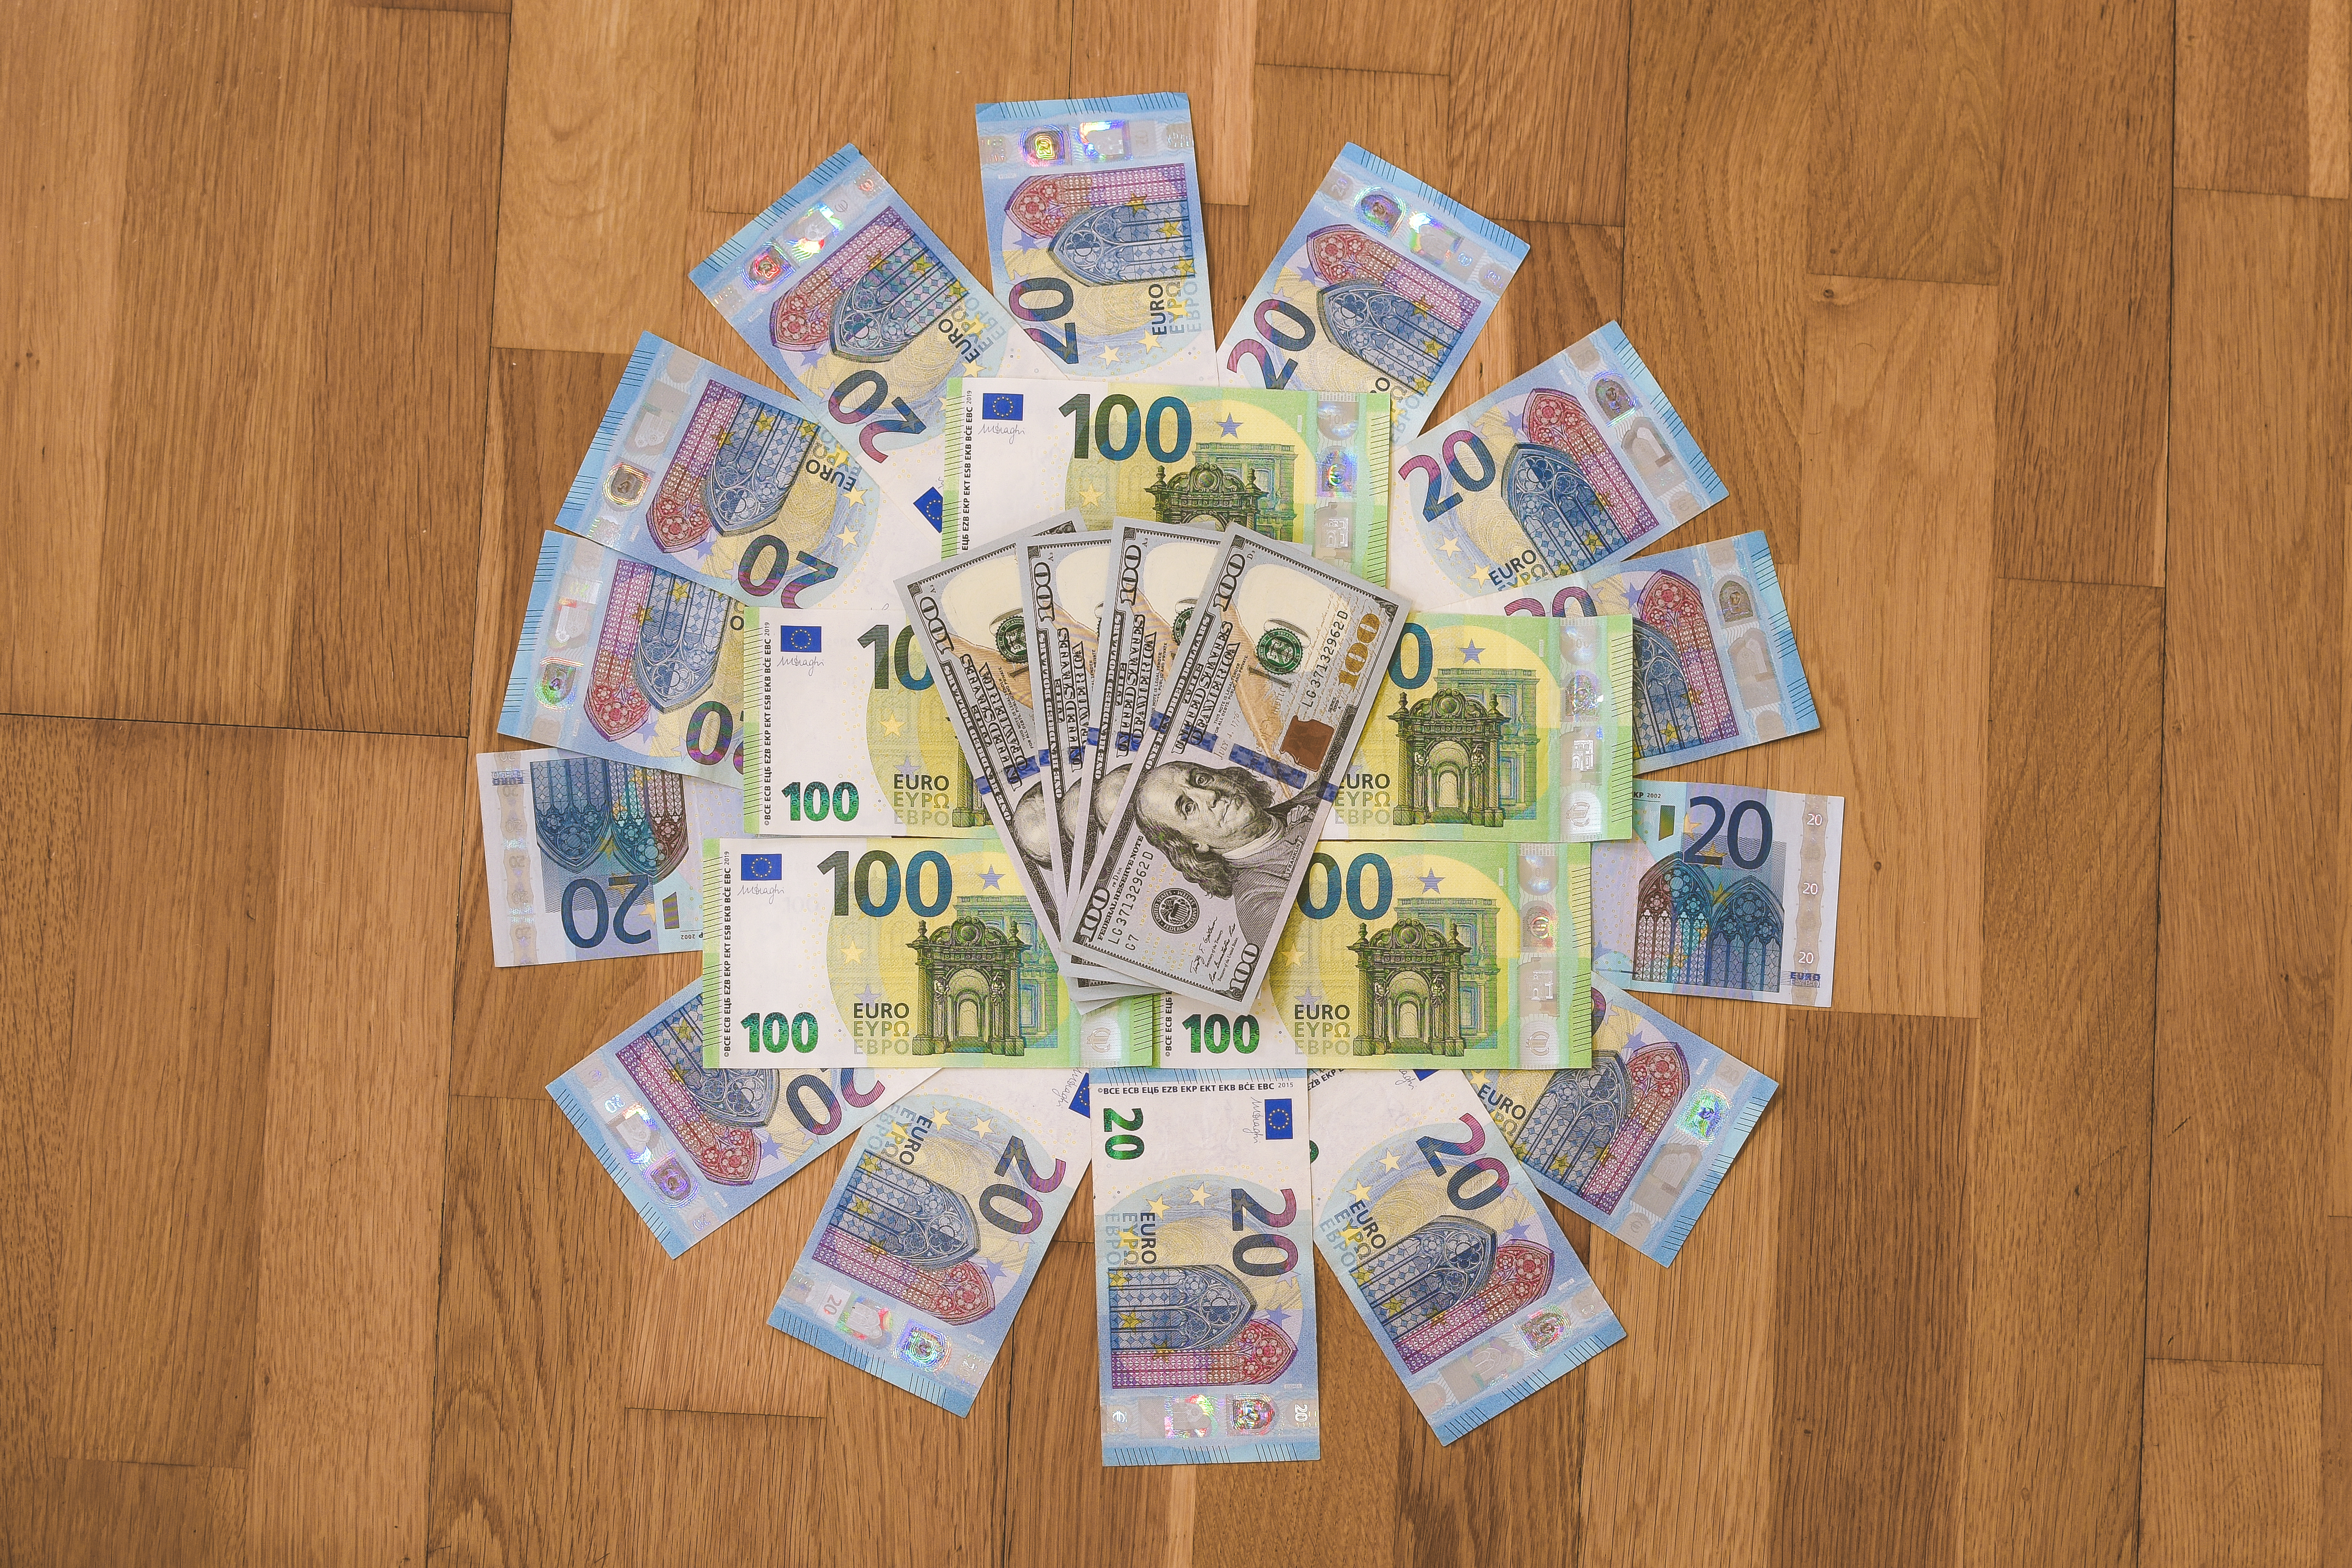 20, 100 Euro (EUR), and 100 Dollar (USD) banknotes placed on a wooden surface in a circular shape.